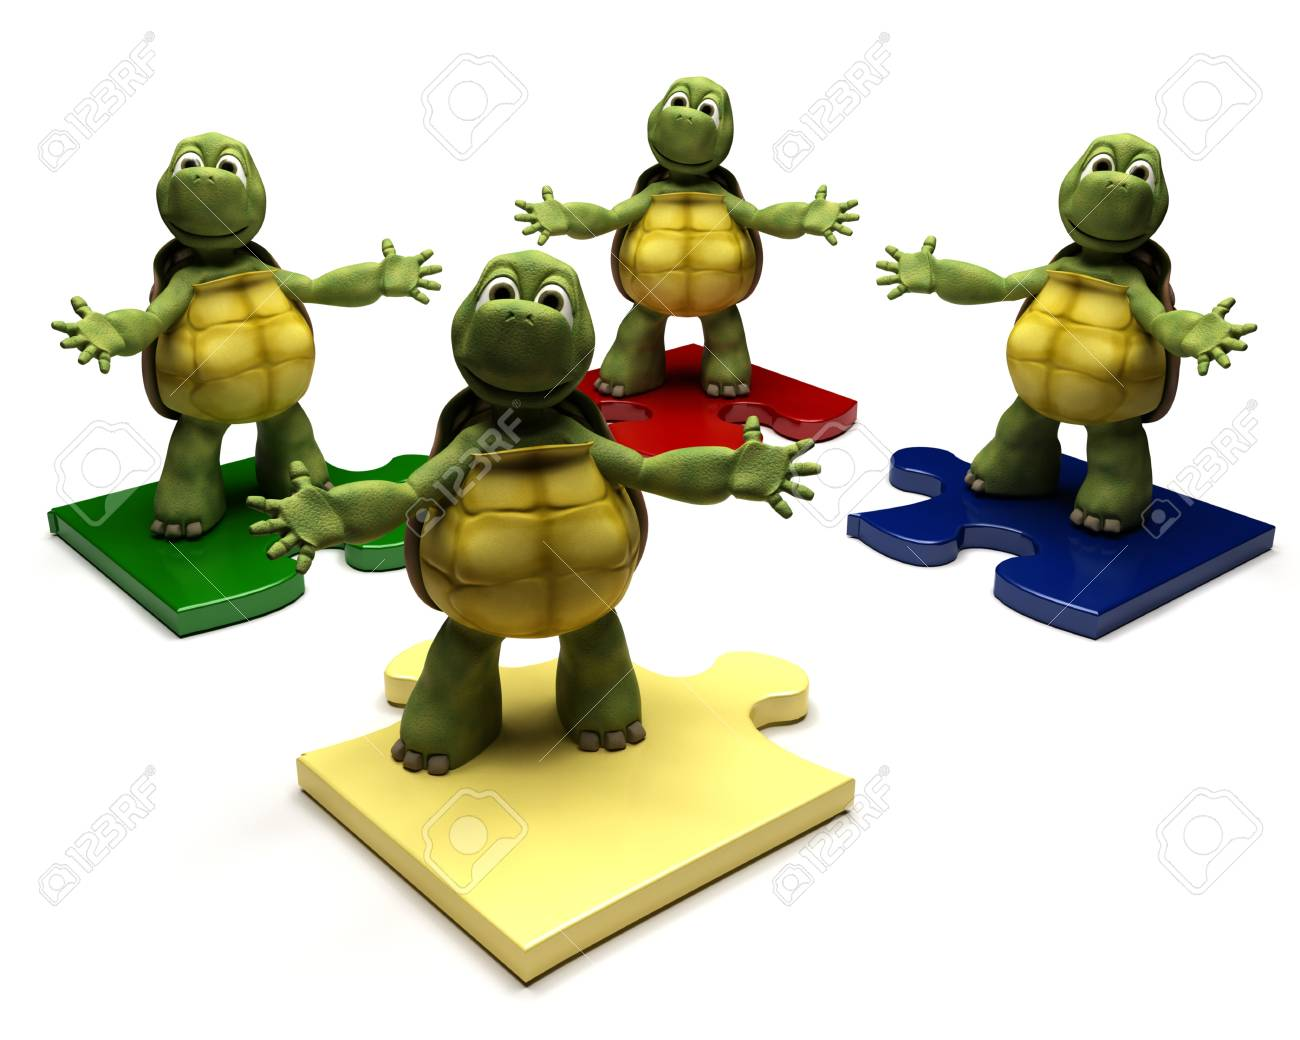 3D Render of a Tortoises on jigsaw pieces Stock Photo - 8981470